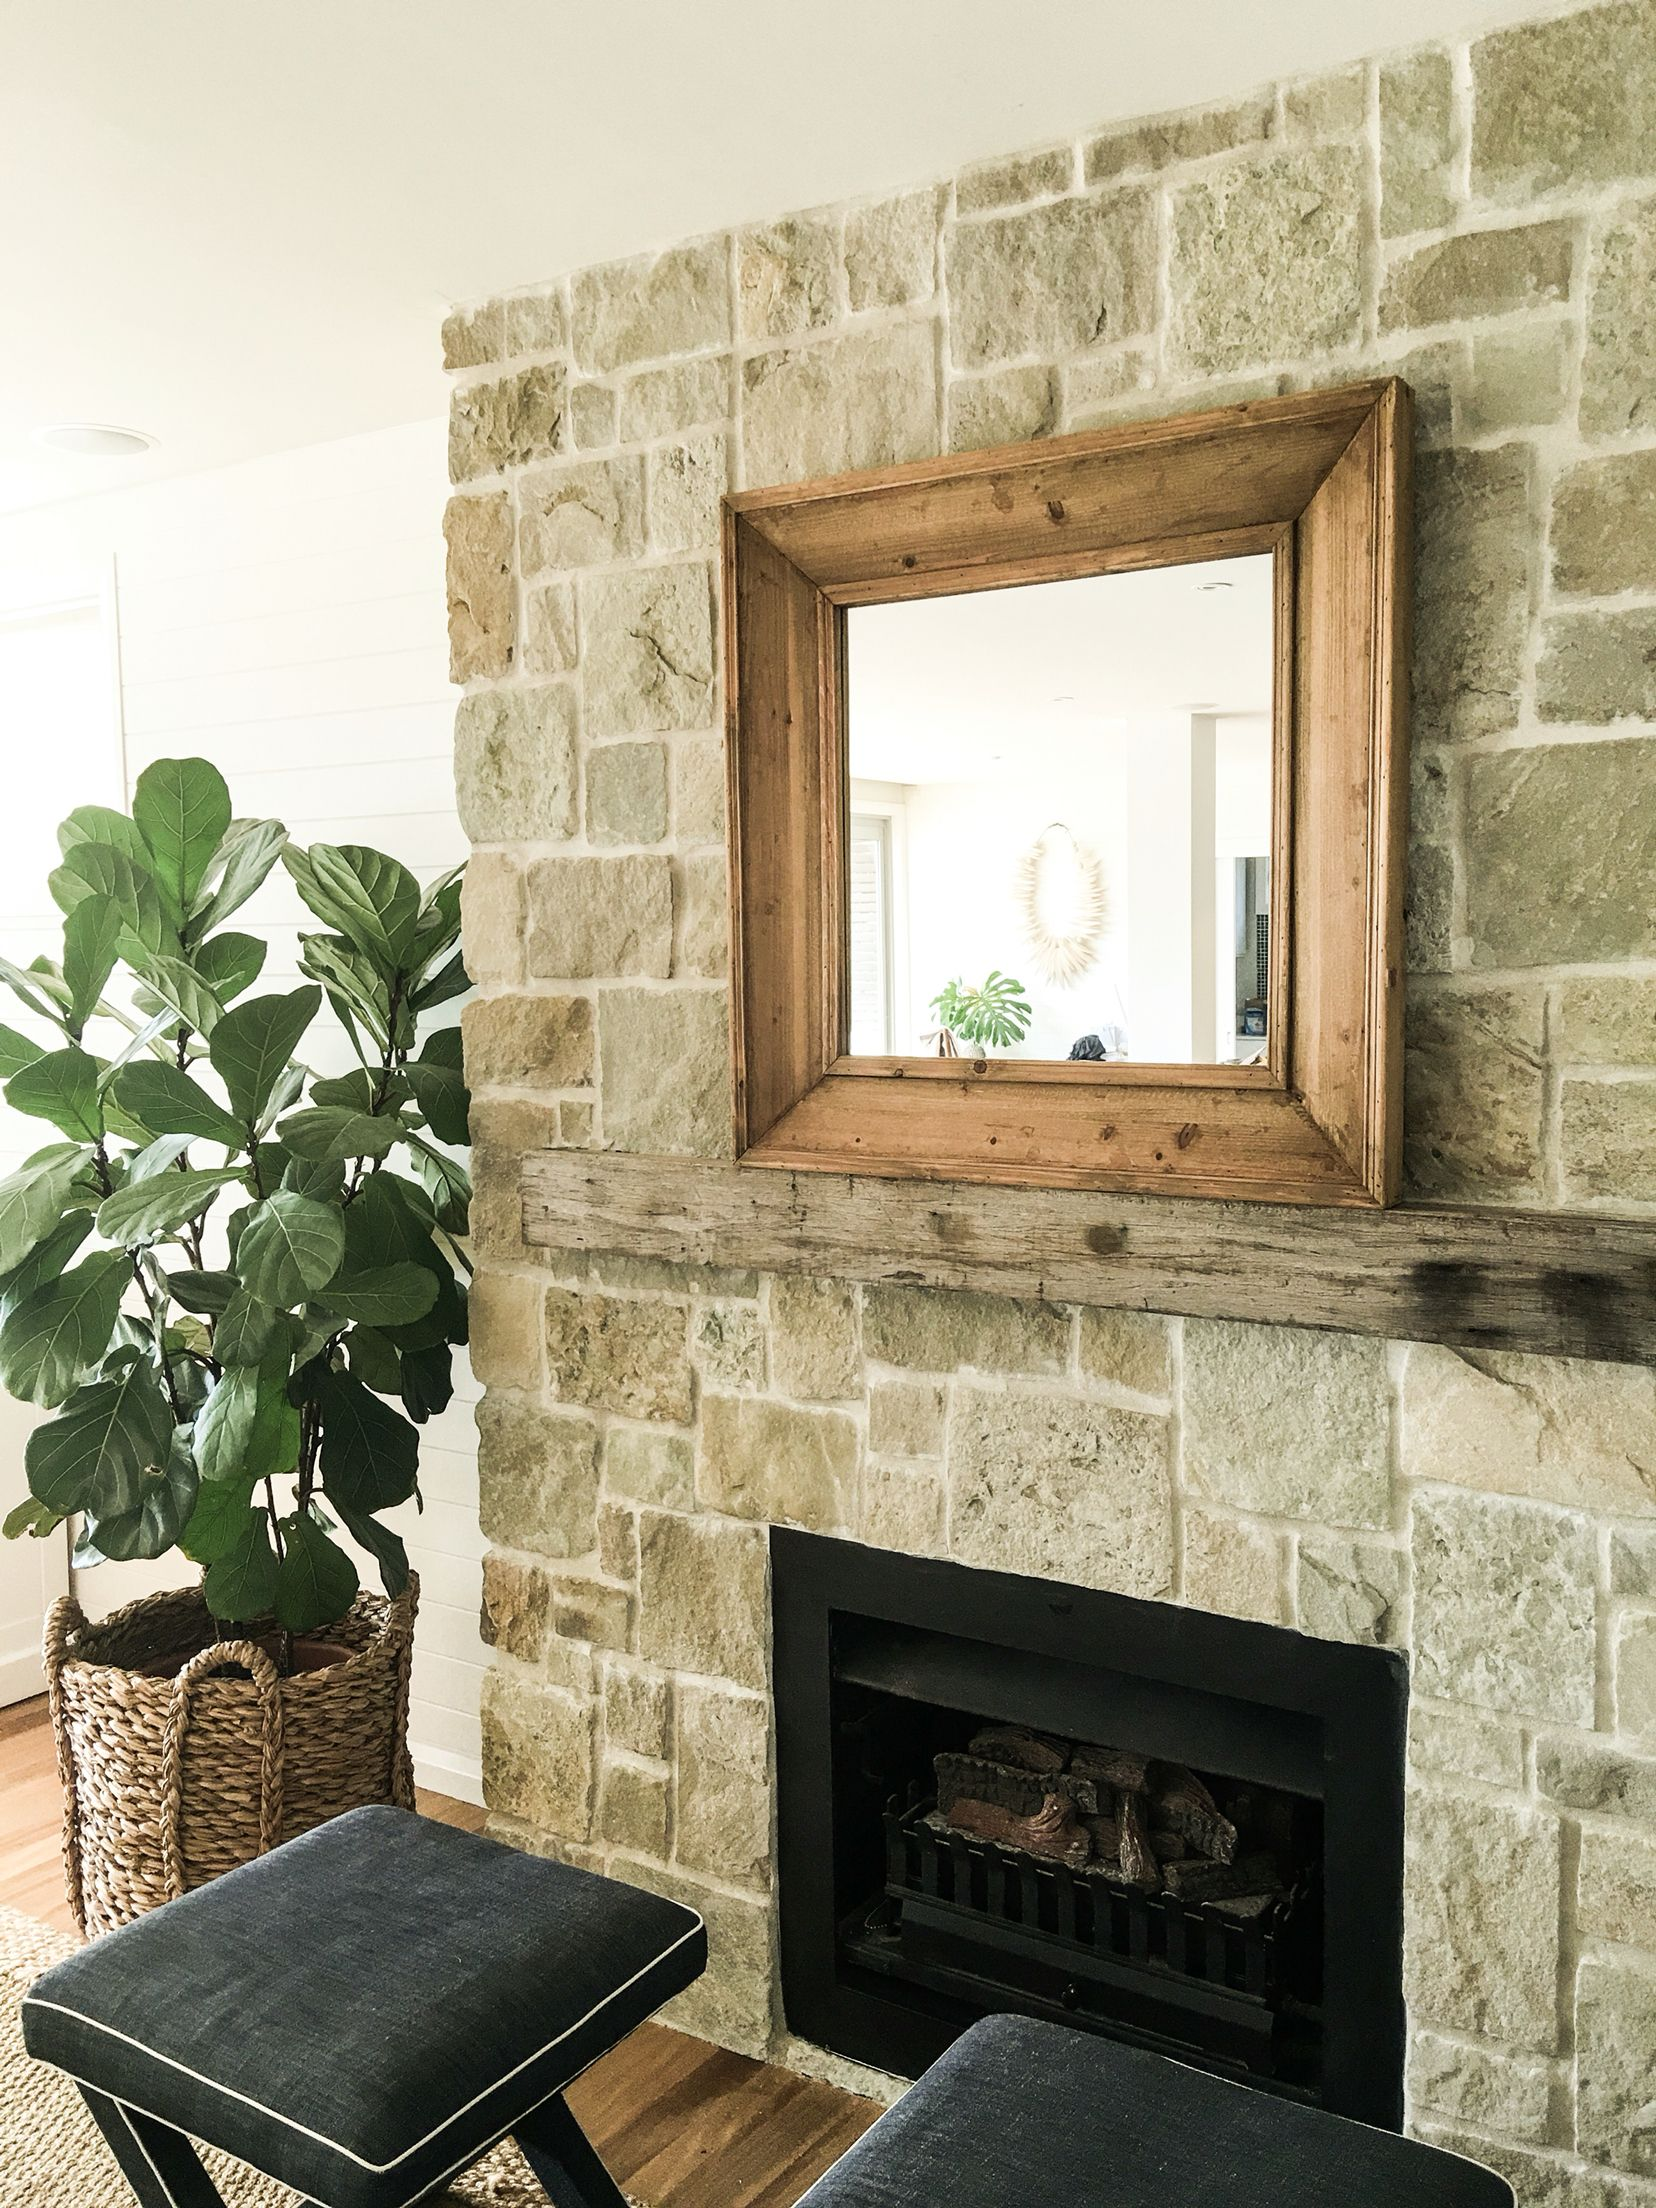 Fireplace with timber framed mirror above the mantel mirrors